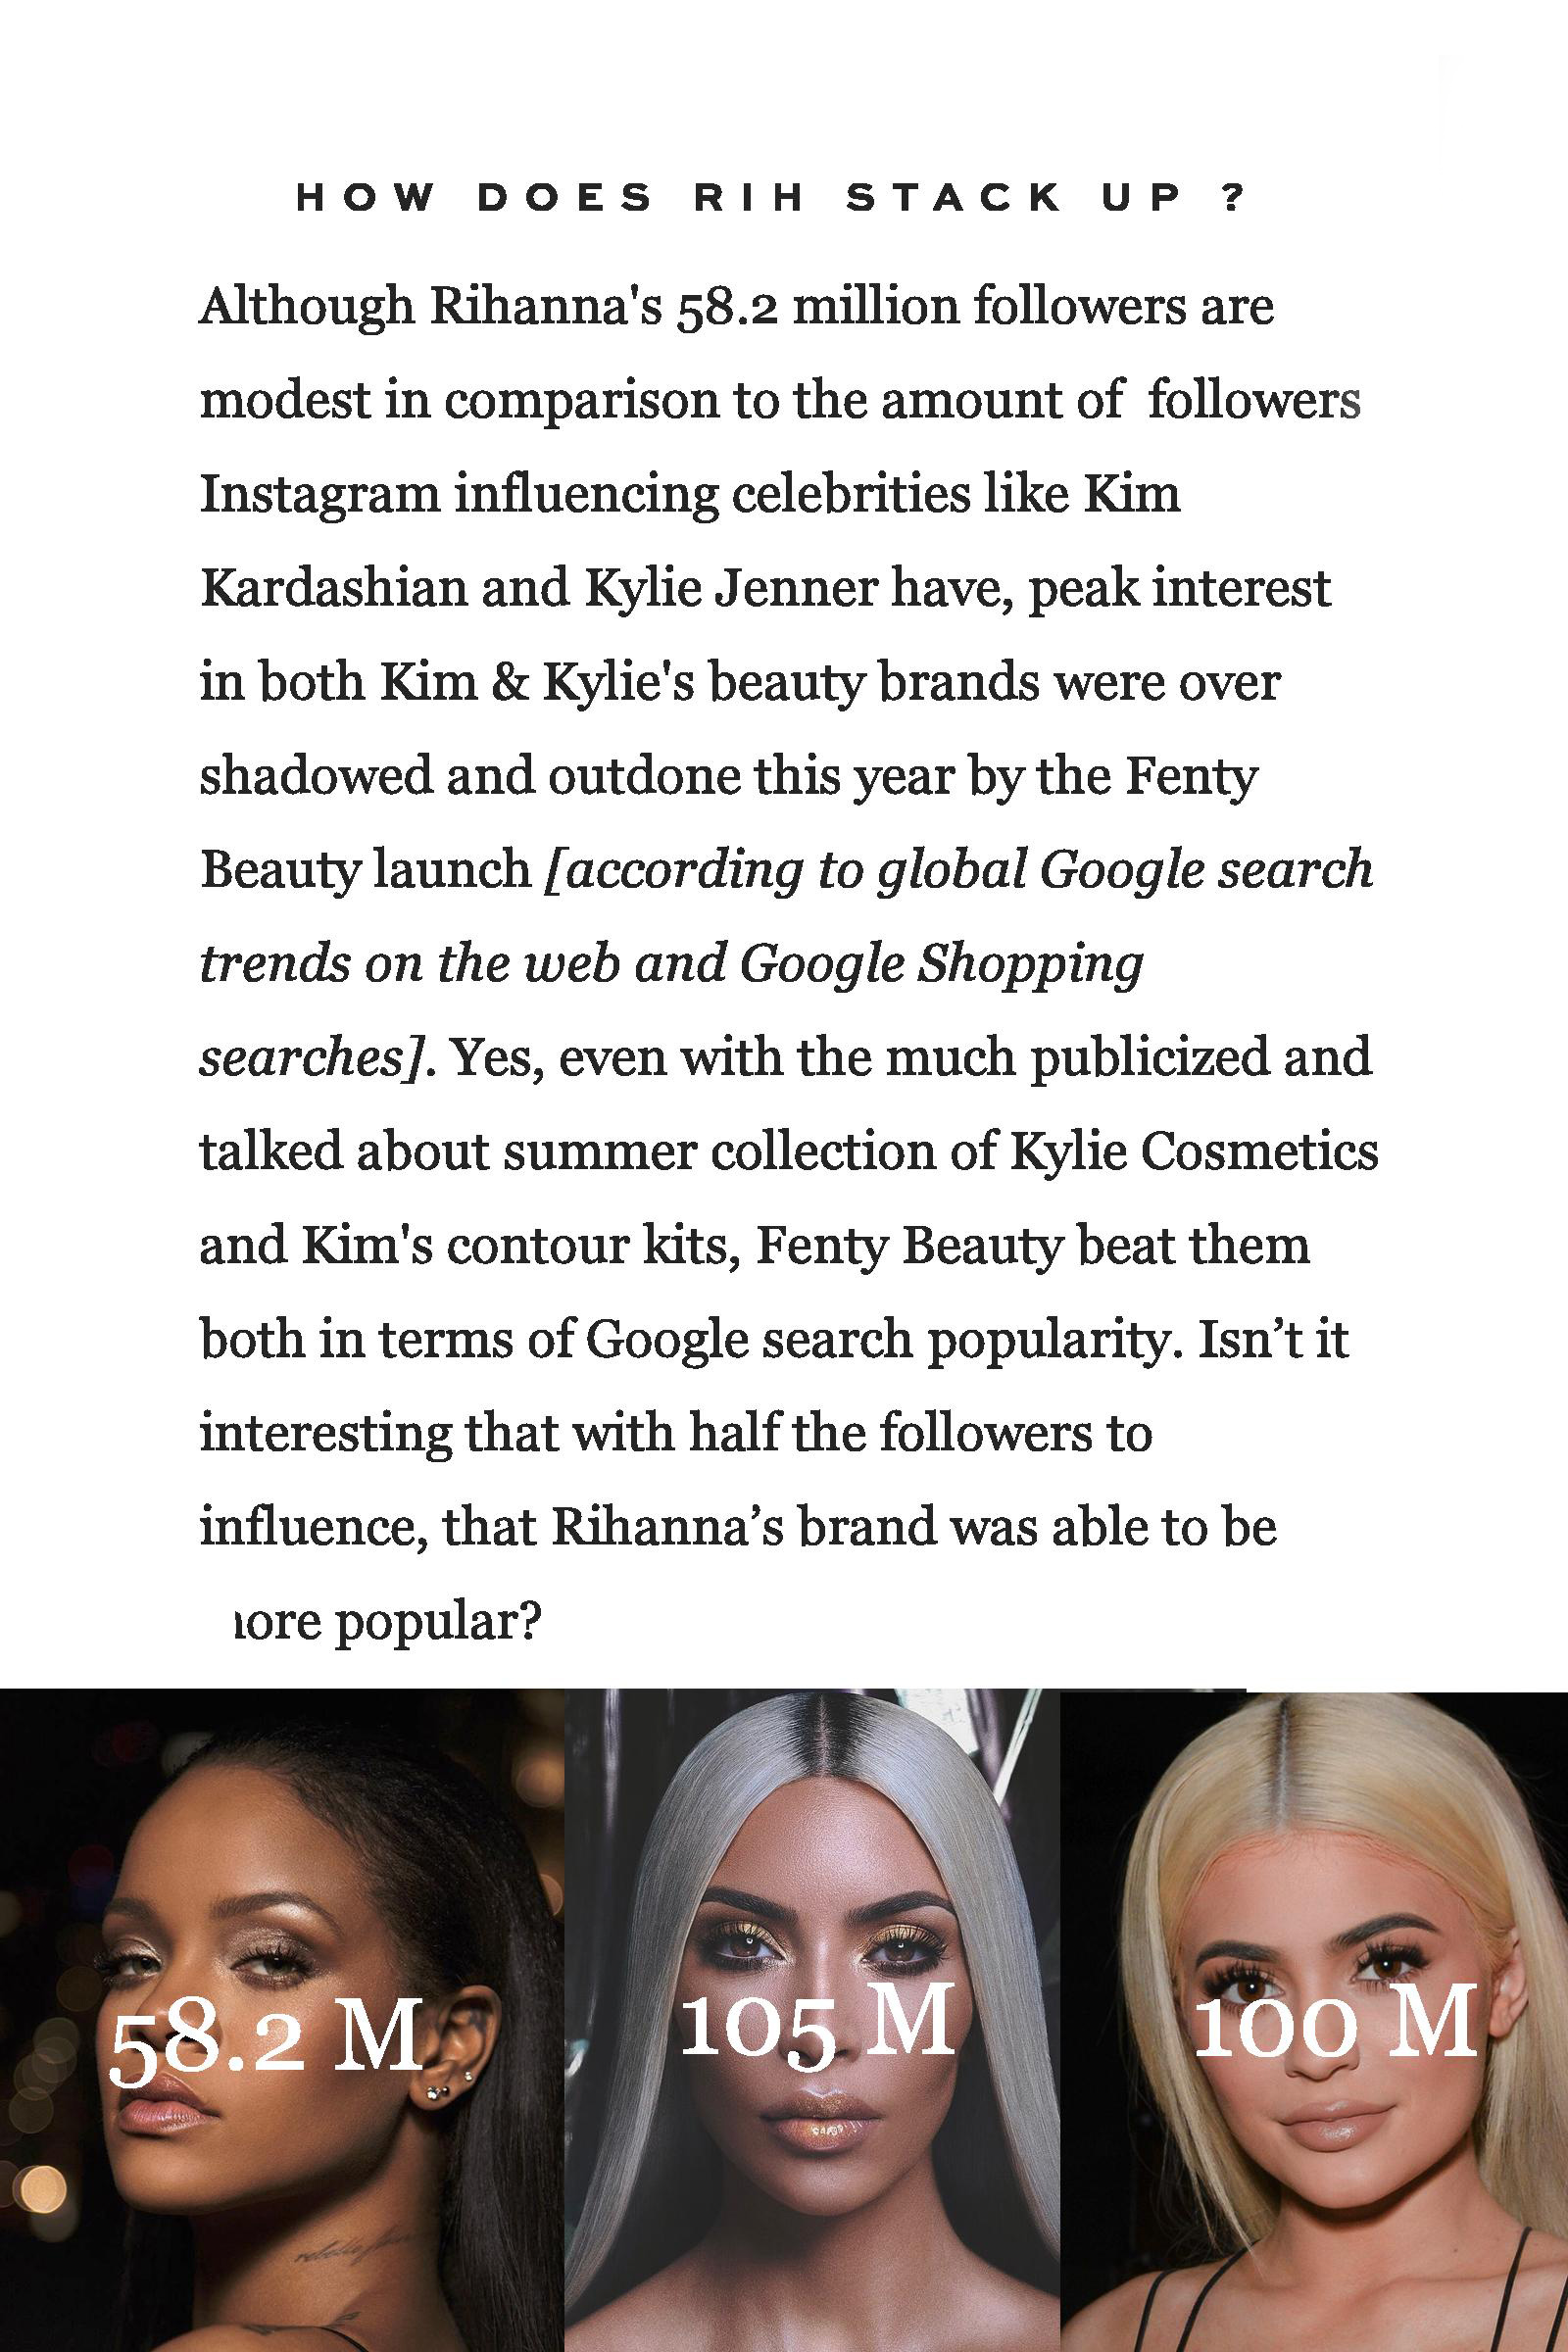 Stunna,-Fenty-Beauty-s-Performance-Is-the-Jolt-the-Beauty-Industry-Needed-page-006